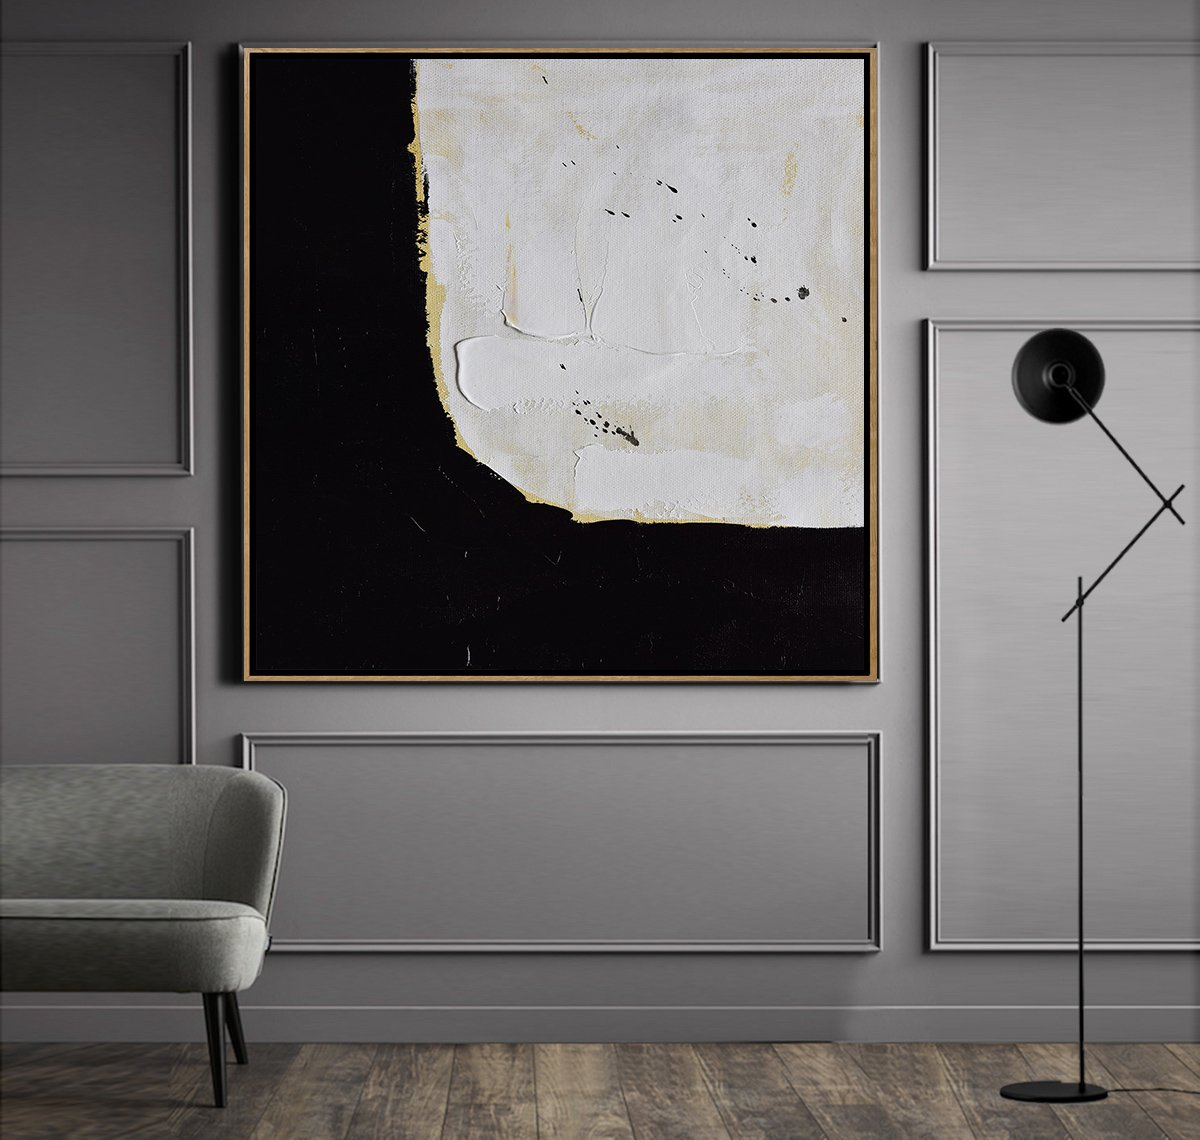 Handmade Painting Large Abstract Art,Handmade Minimal Art Palette Knife Canvas Painting, Black White Beige - Living Room Wall Art